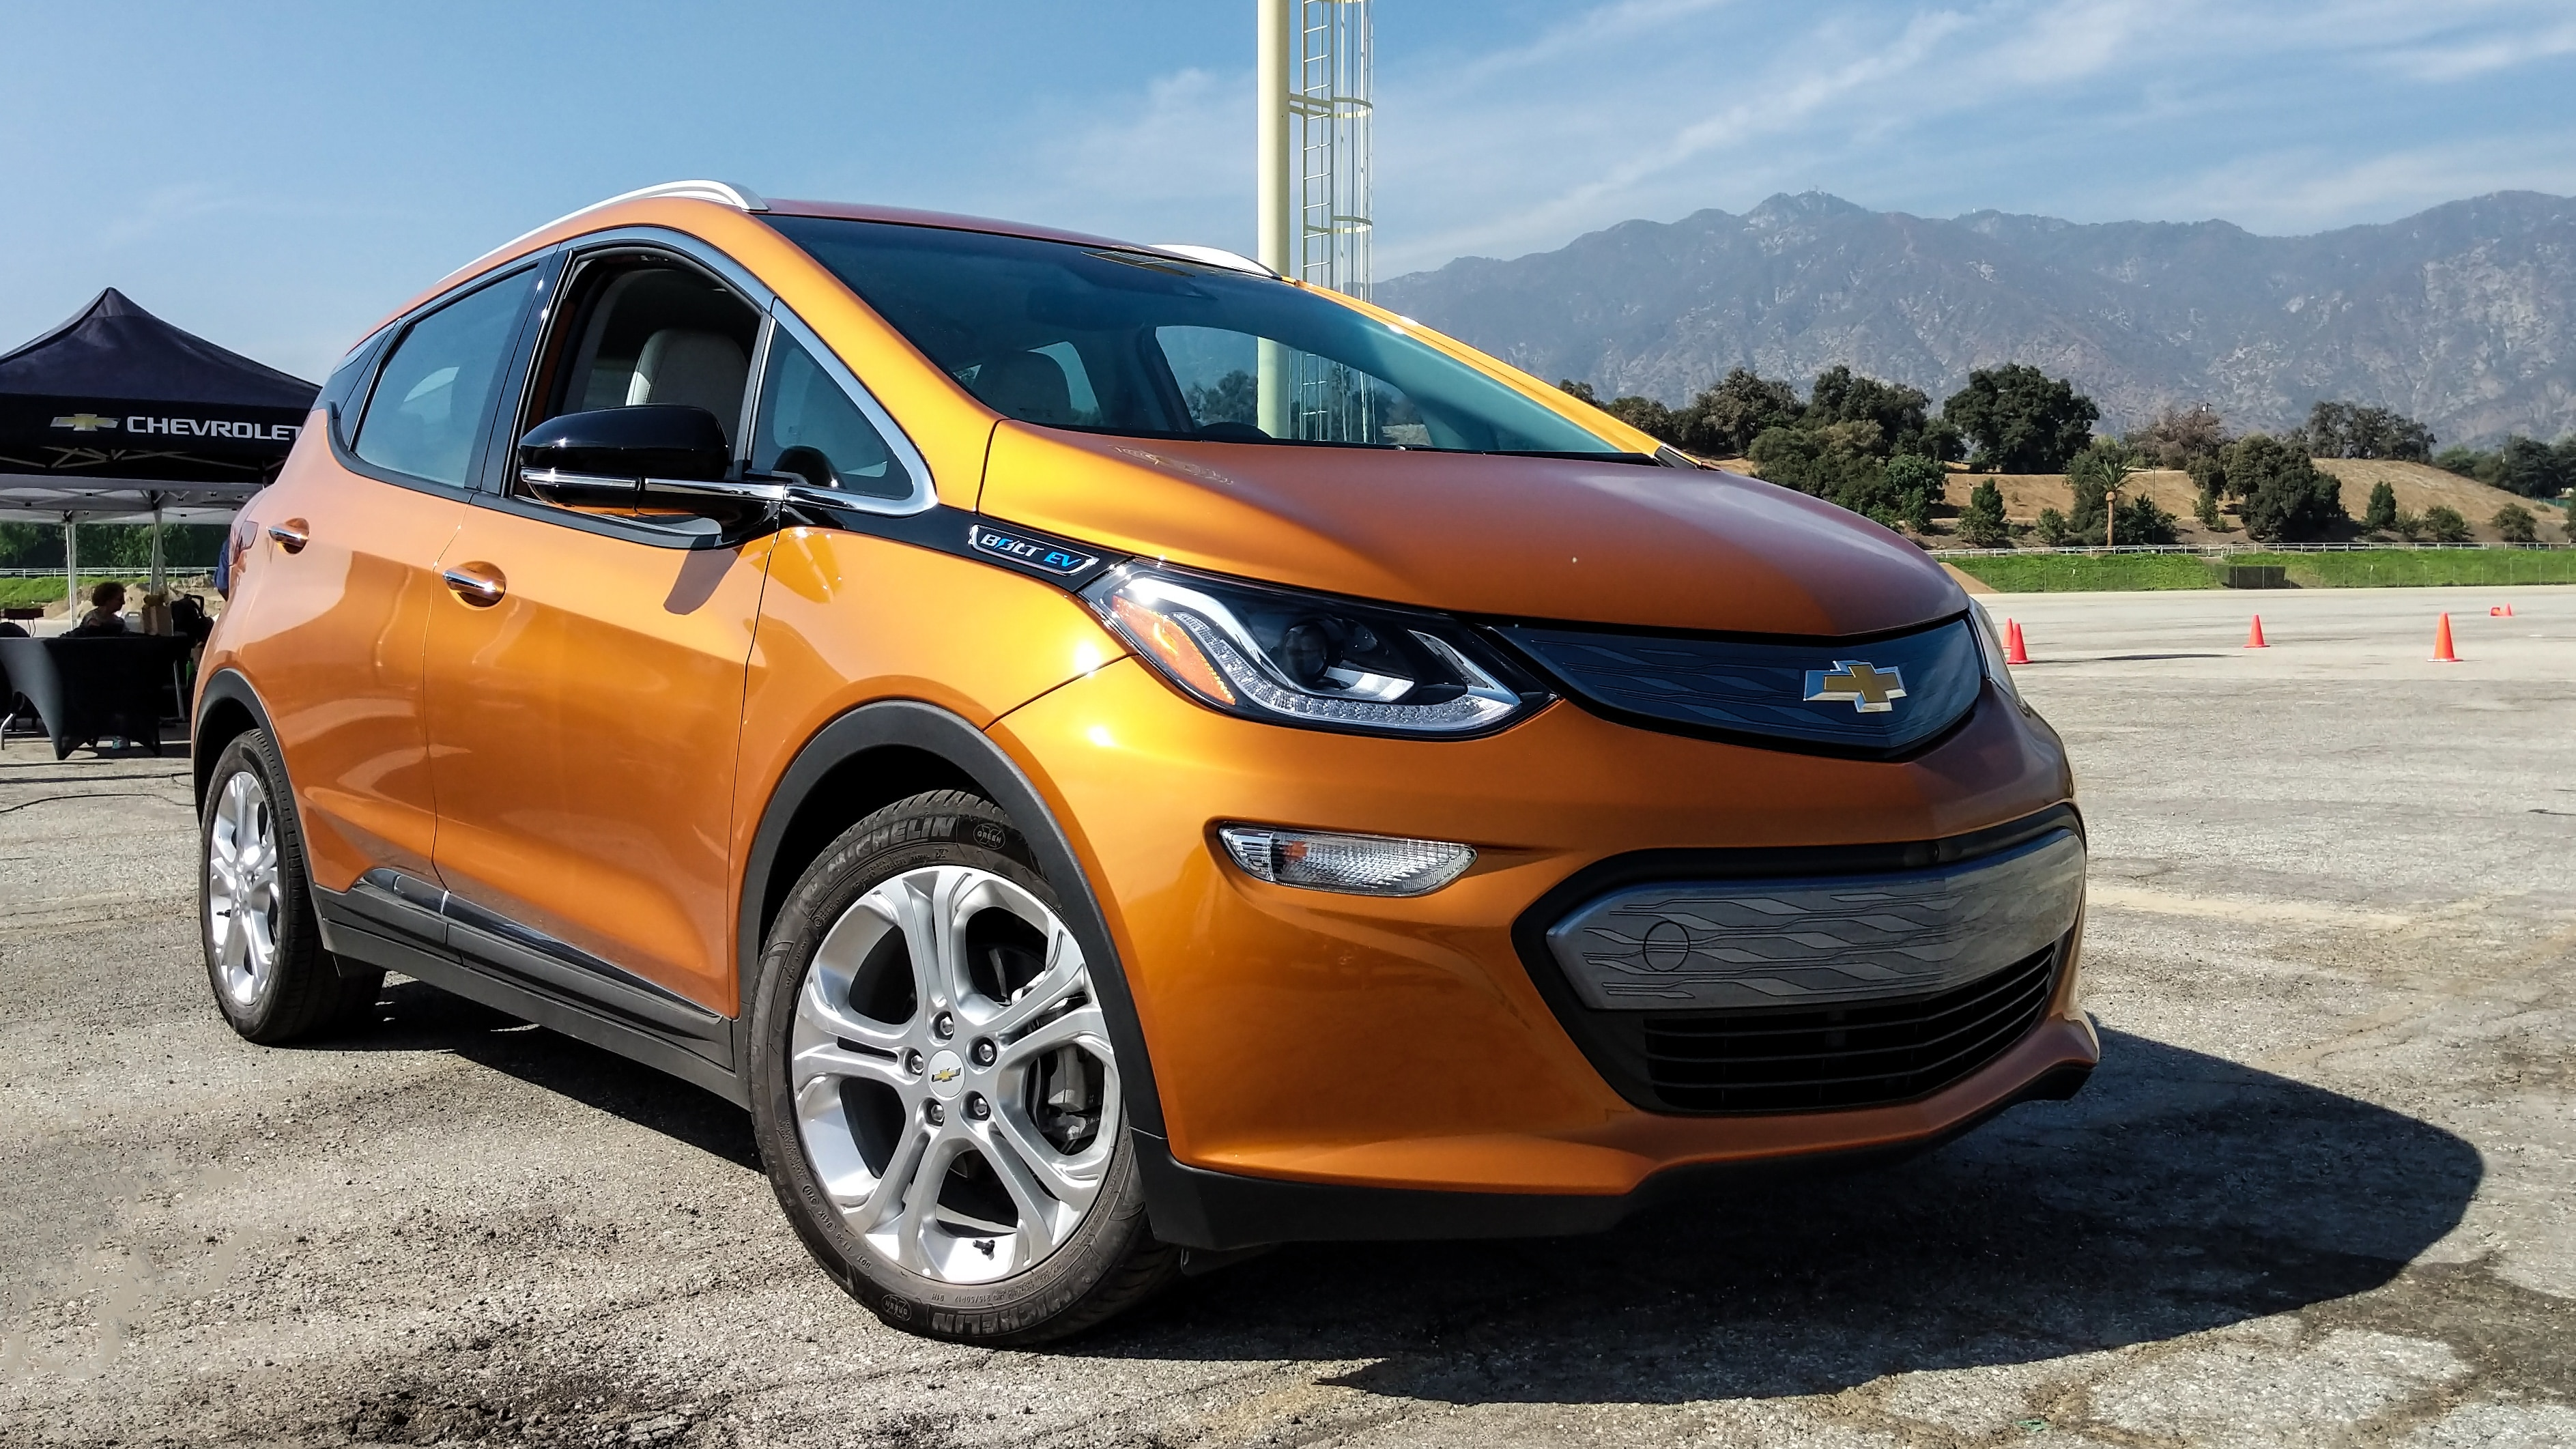 Chevy Bolt Autocross 3 1